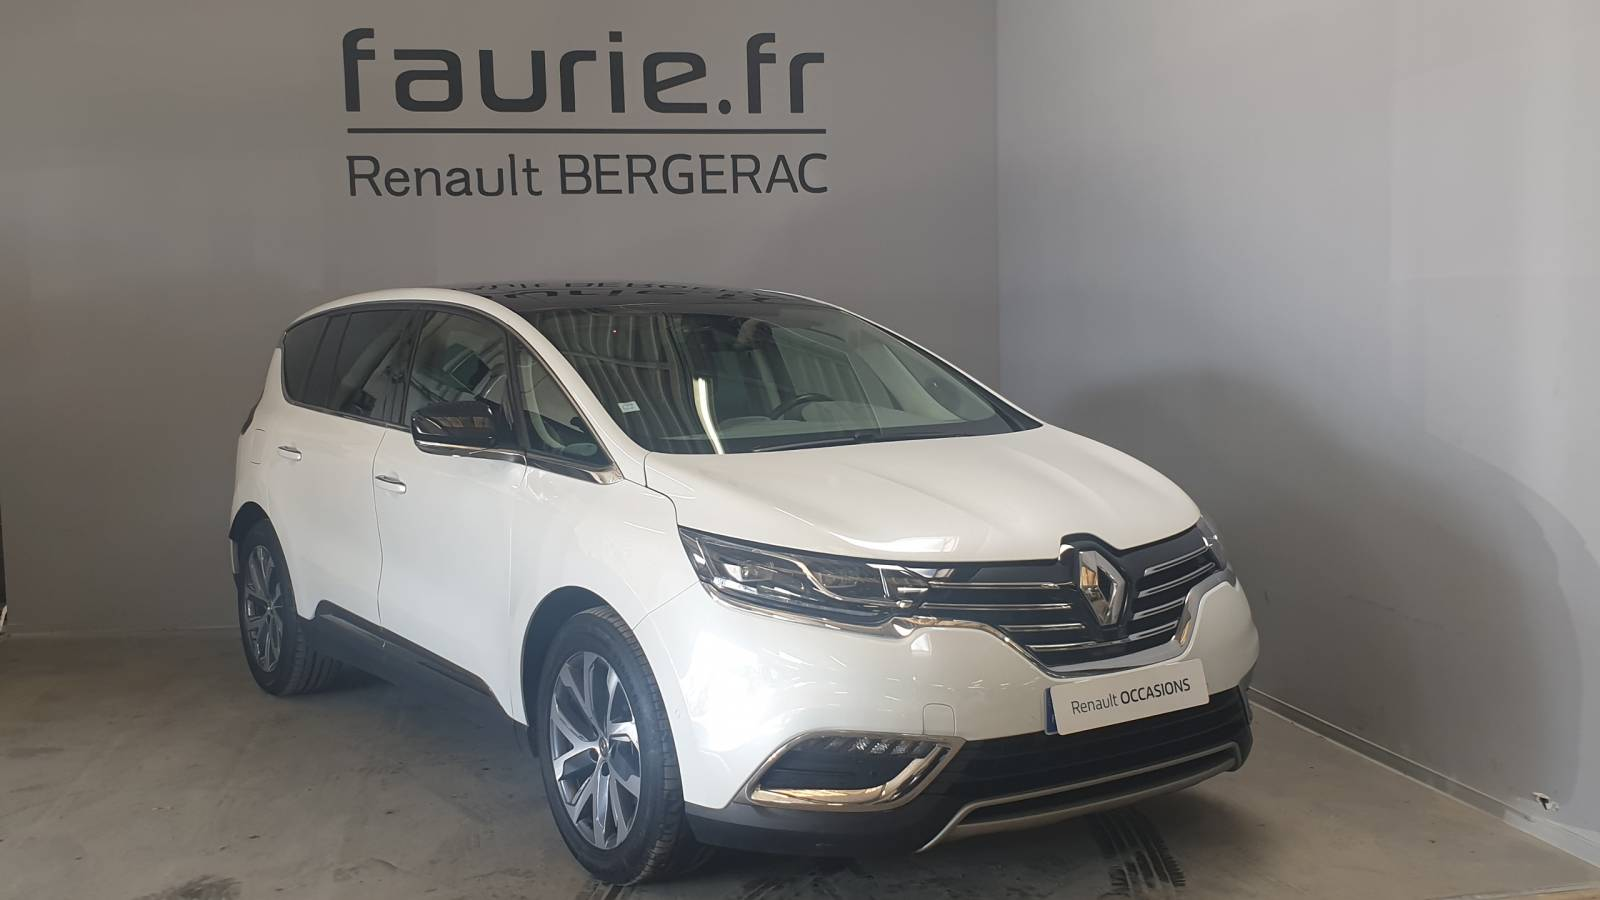 RENAULT Espace dCi 160 Energy Twin Turbo - véhicule d'occasion - Site Internet Faurie - Renault - Faurie Auto Bergerac - 24100 - Bergerac - 3